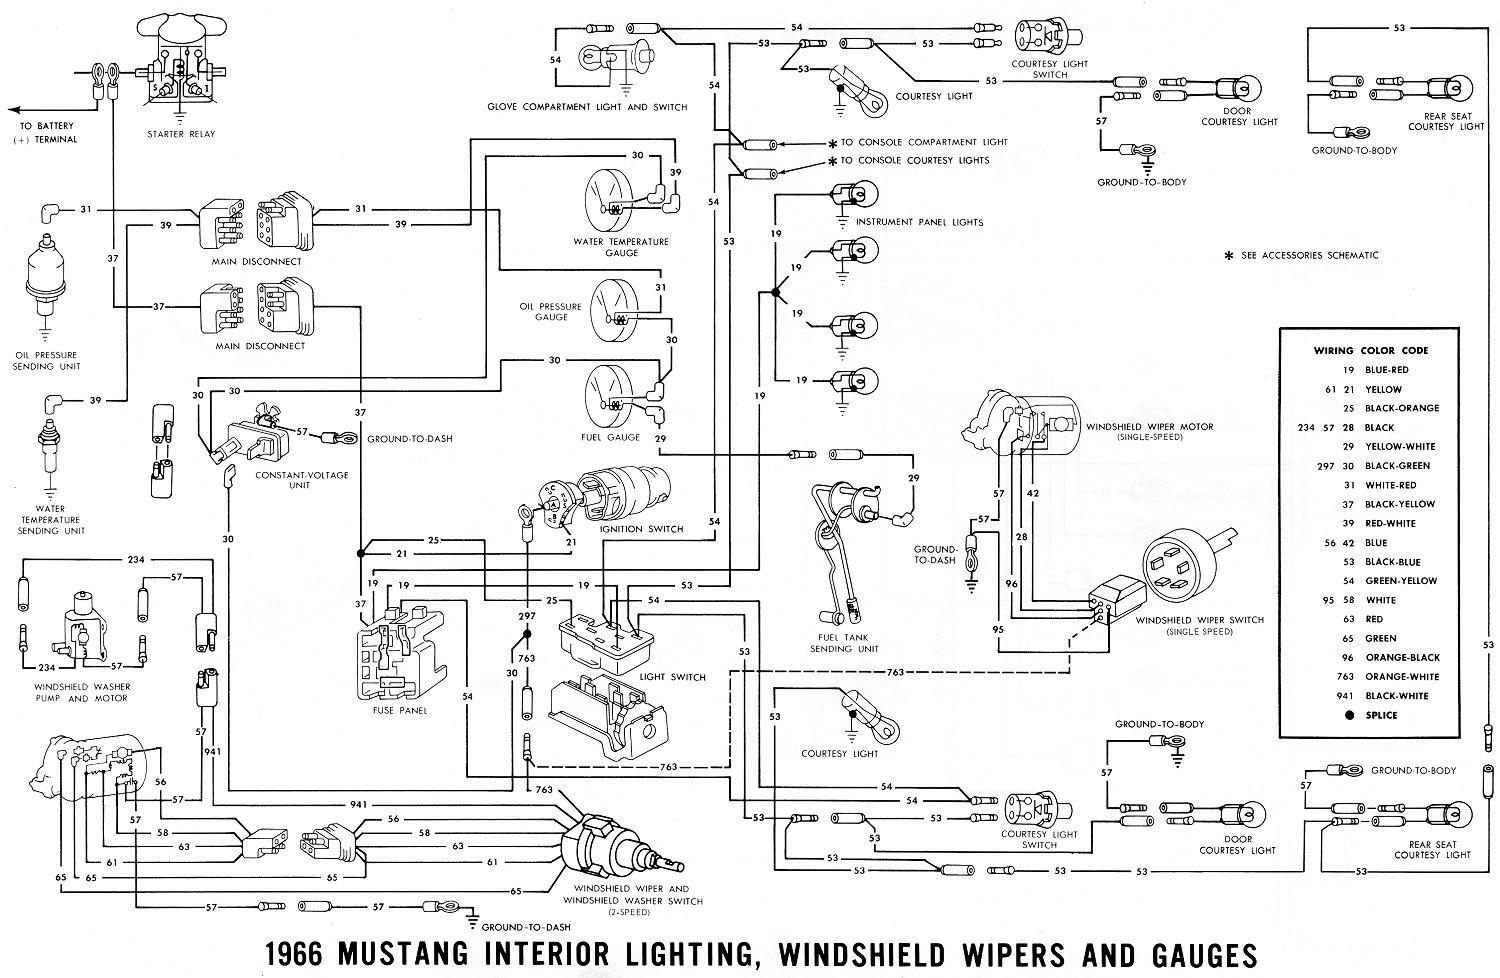 medium resolution of 1966 mustang alternator wiring diagram lelu 39s 66 wiring diagrams 1966 mustang alternator wiring diagram lelu 39s 66